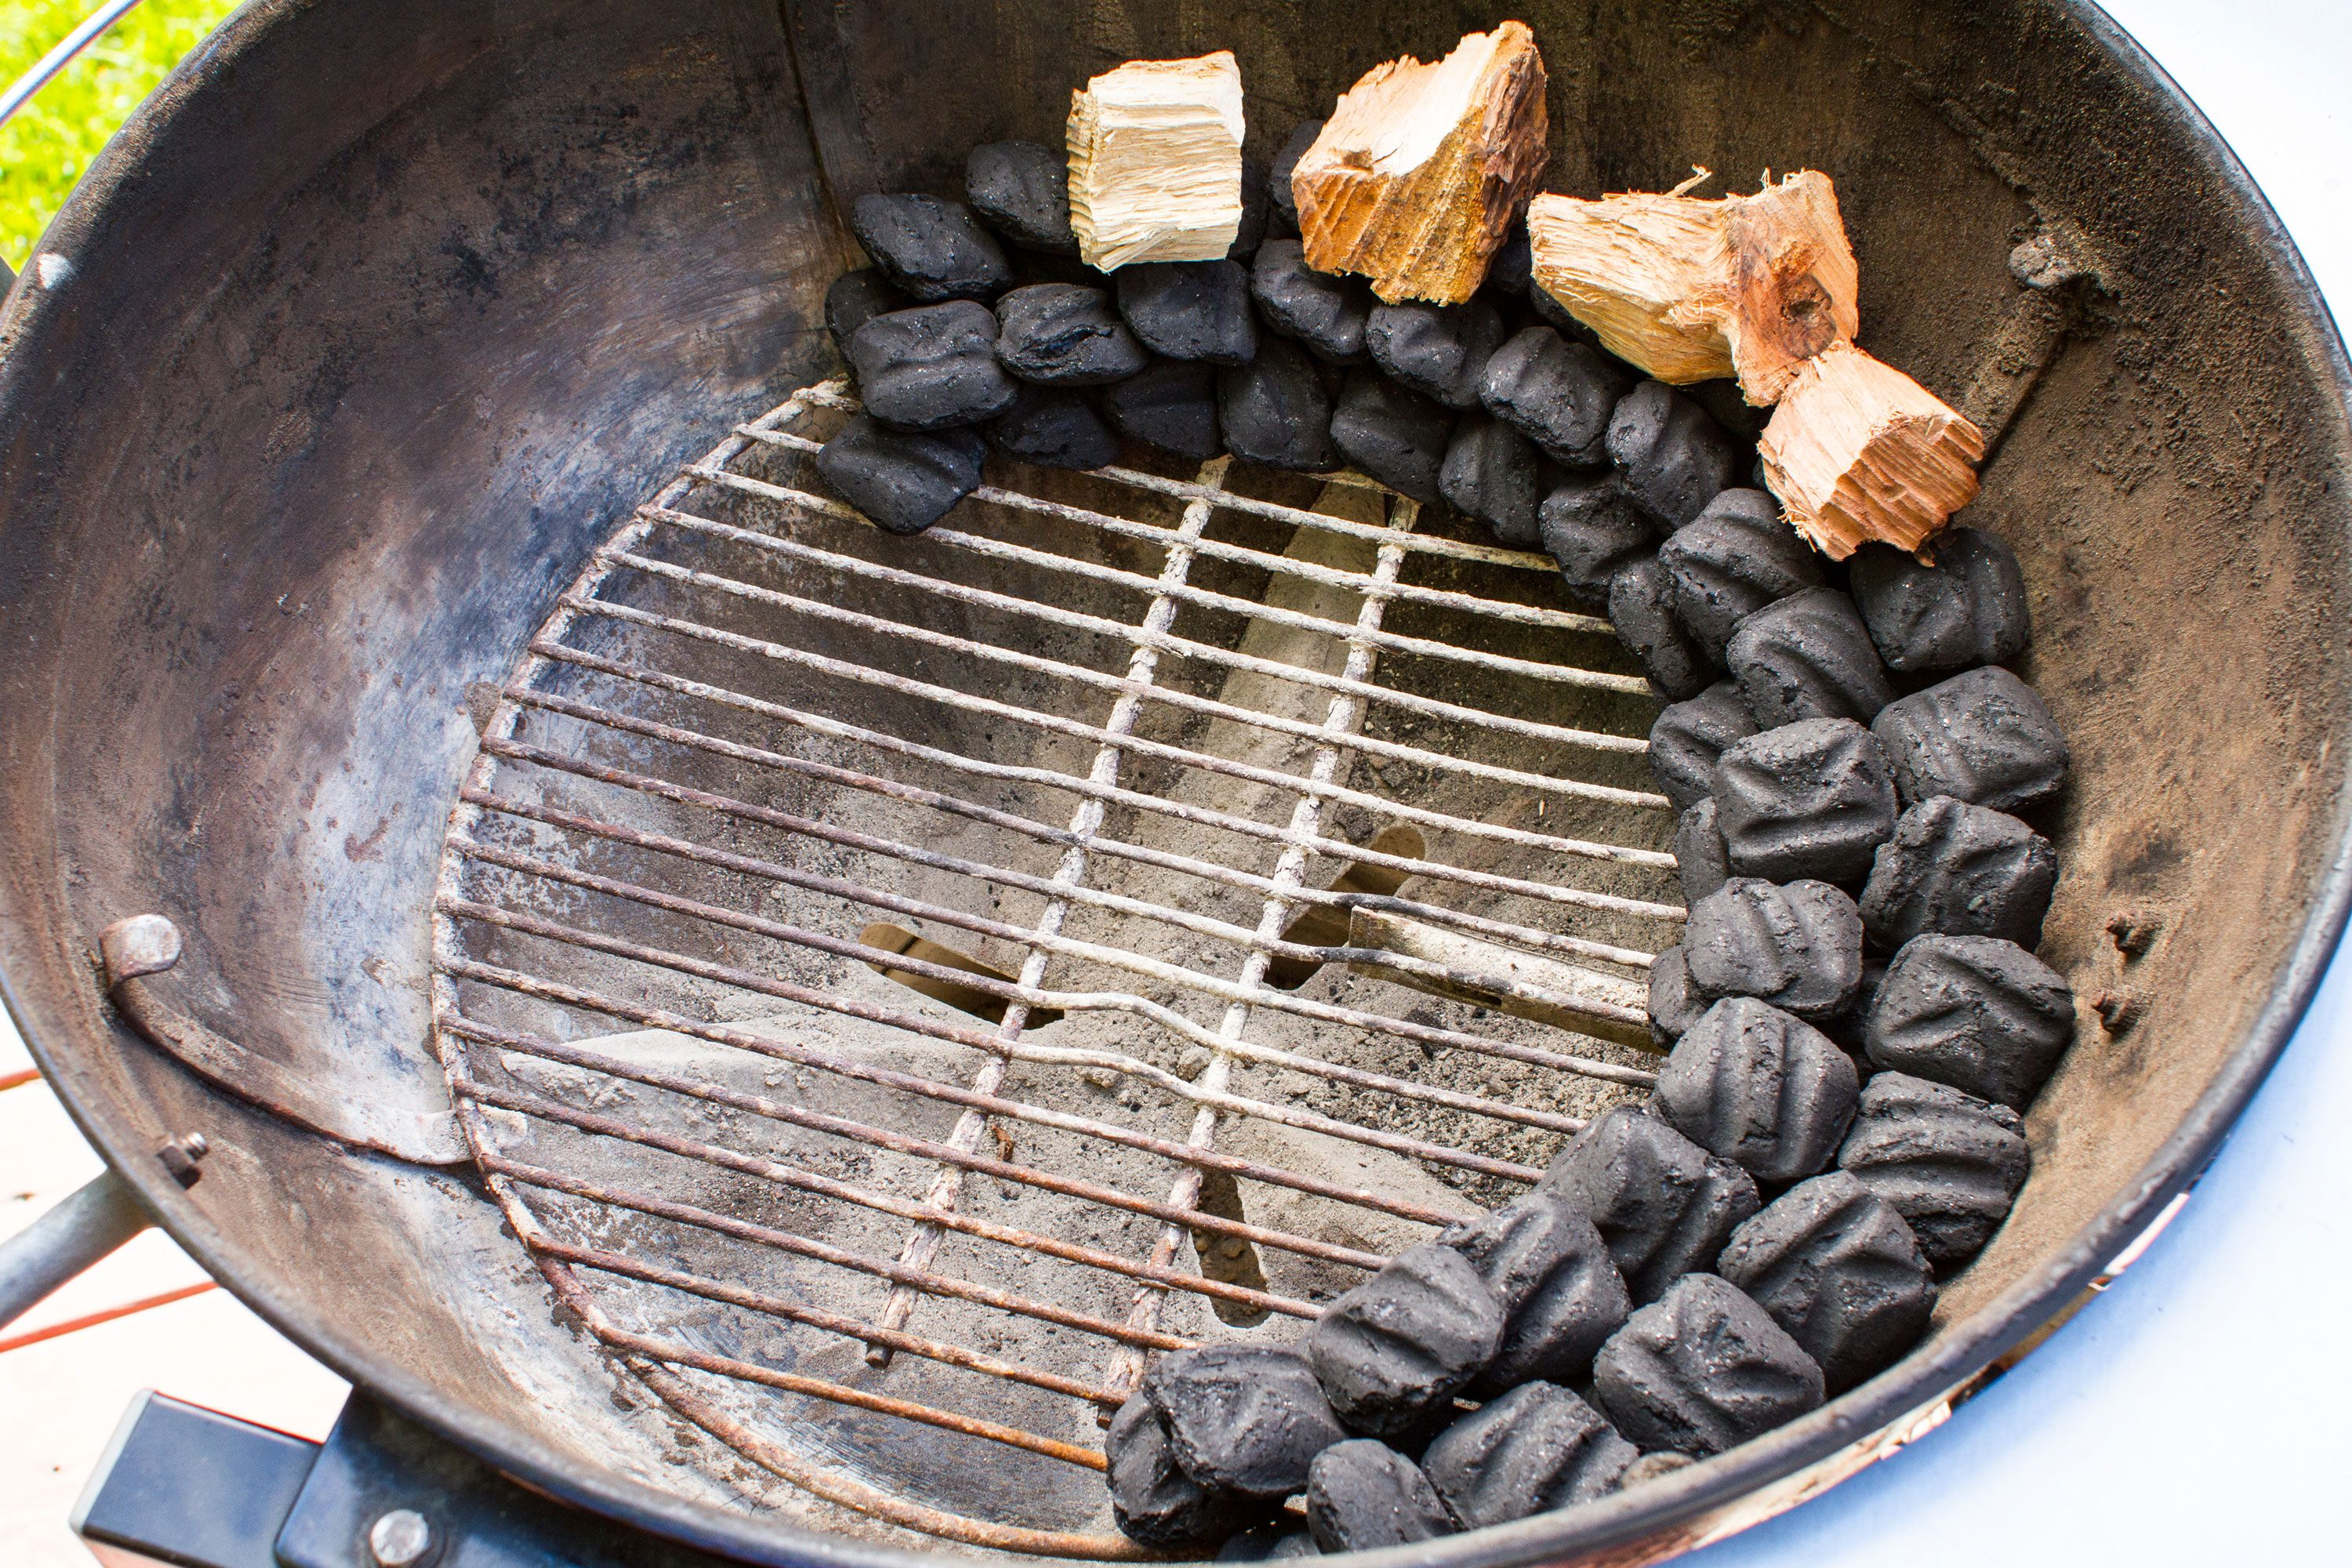 The Trick That Turns Your Grill Into A Top Notch Smoker